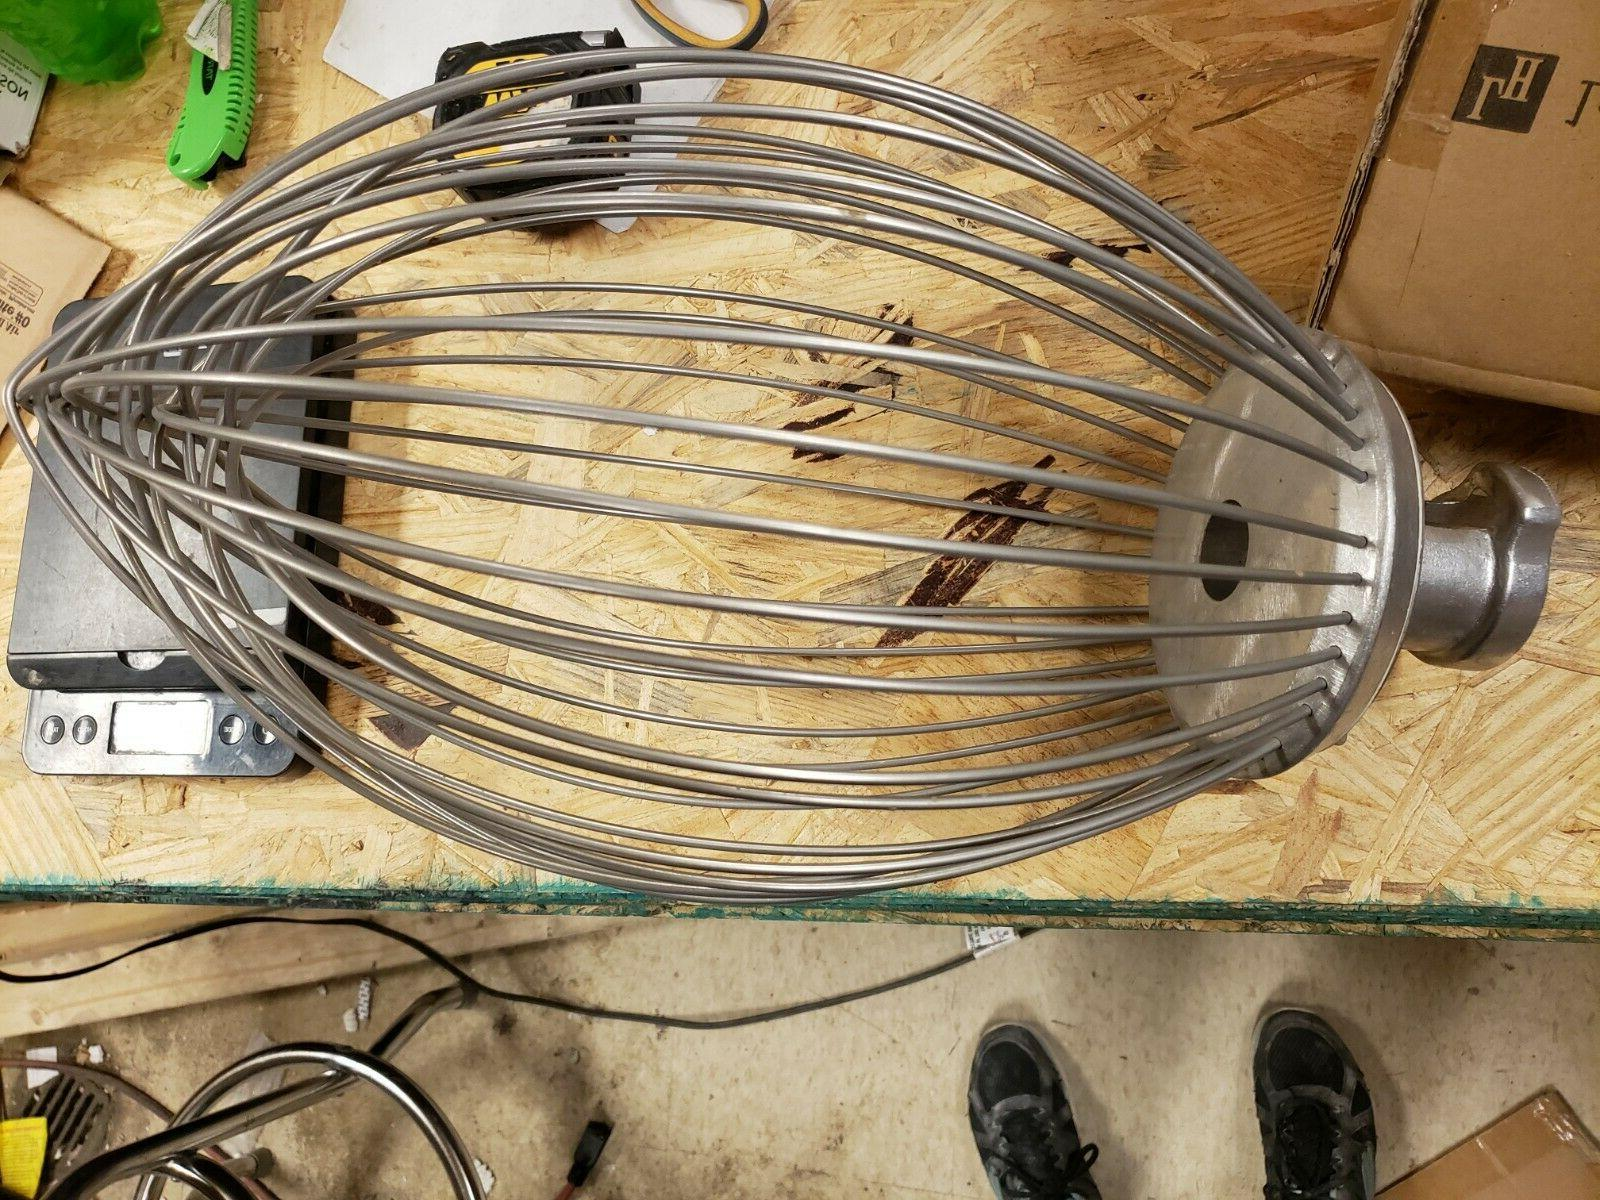 equivalent classic stainless steel wire whip